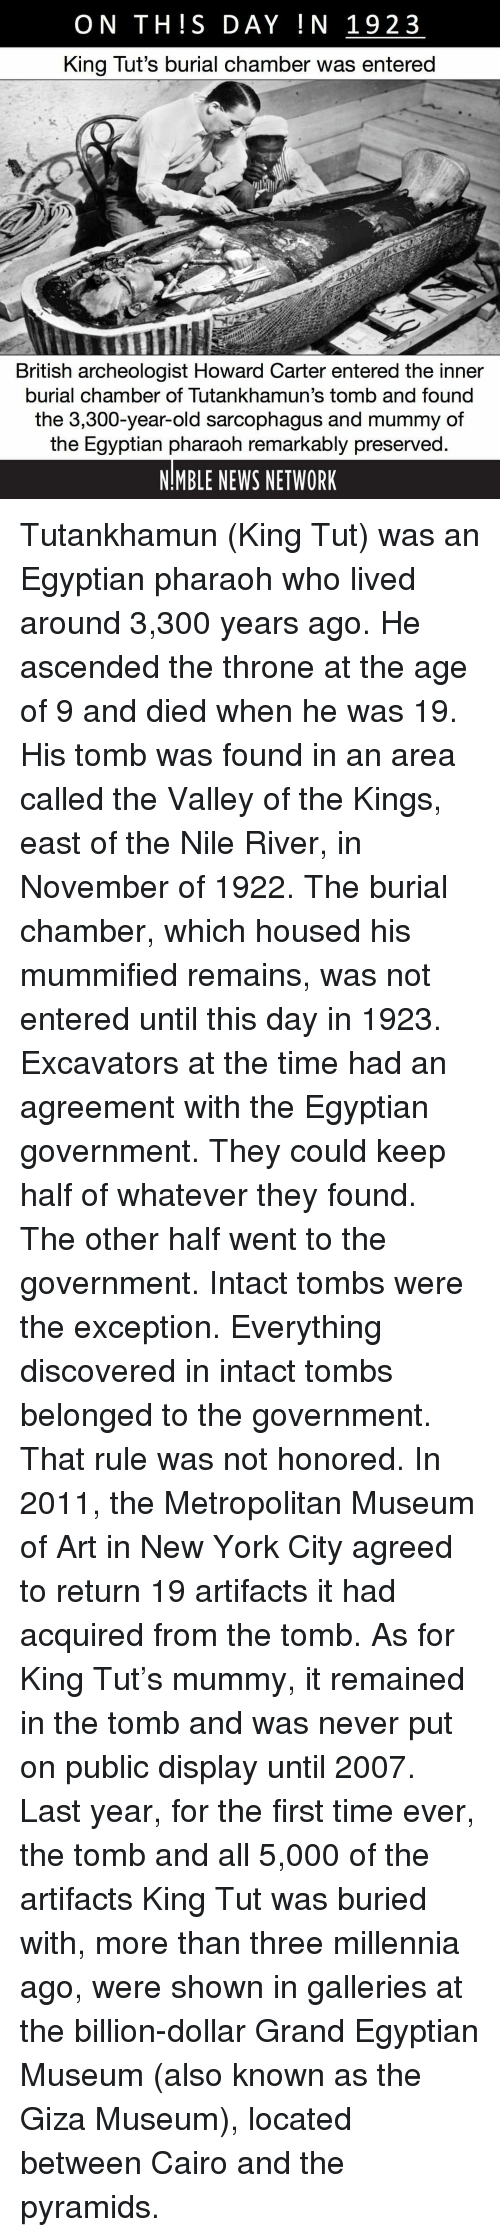 Memes, New York, and News: ON THIS DAY IN 1923  King Tut's burial chamber was entered  British archeologist Howard Carter entered the inner  burial chamber of Tutankhamun's tomb and found  the 3,300-year-old sarcophagus and mummy of  the Egyptian pharaoh remarkably preserved  NIMBLE NEWS NETWORK Tutankhamun (King Tut) was an Egyptian pharaoh who lived around 3,300 years ago. He ascended the throne at the age of 9 and died when he was 19. His tomb was found in an area called the Valley of the Kings, east of the Nile River, in November of 1922. The burial chamber, which housed his mummified remains, was not entered until this day in 1923. Excavators at the time had an agreement with the Egyptian government. They could keep half of whatever they found. The other half went to the government. Intact tombs were the exception. Everything discovered in intact tombs belonged to the government. That rule was not honored. In 2011, the Metropolitan Museum of Art in New York City agreed to return 19 artifacts it had acquired from the tomb. As for King Tut's mummy, it remained in the tomb and was never put on public display until 2007. Last year, for the first time ever, the tomb and all 5,000 of the artifacts King Tut was buried with, more than three millennia ago, were shown in galleries at the billion-dollar Grand Egyptian Museum (also known as the Giza Museum), located between Cairo and the pyramids.